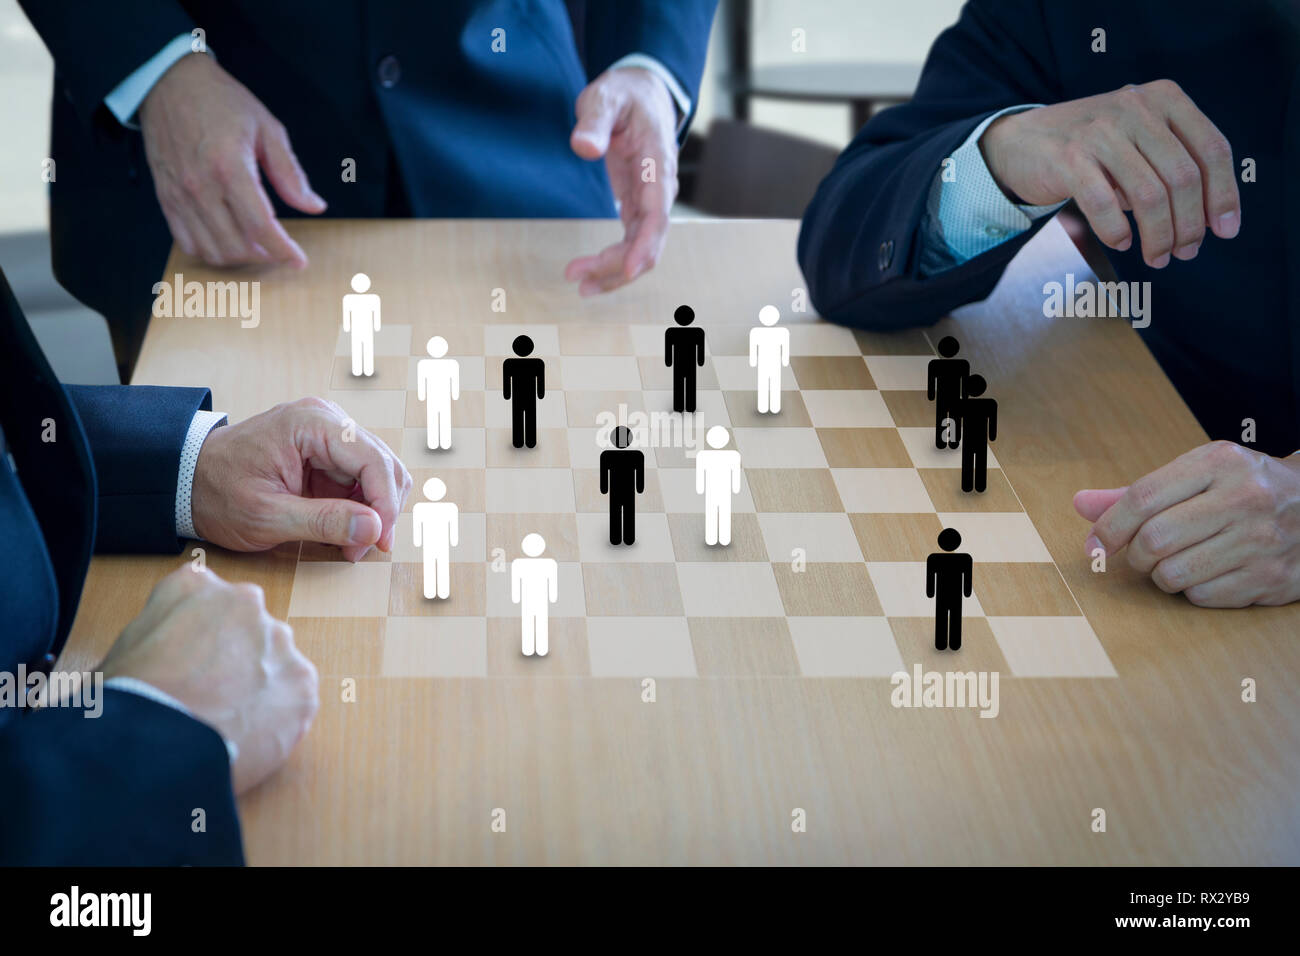 Three business administrators playing checkers or draughts on a wooden checkerboard or draughtboard in concept of manpower or human resource. Stock Photo